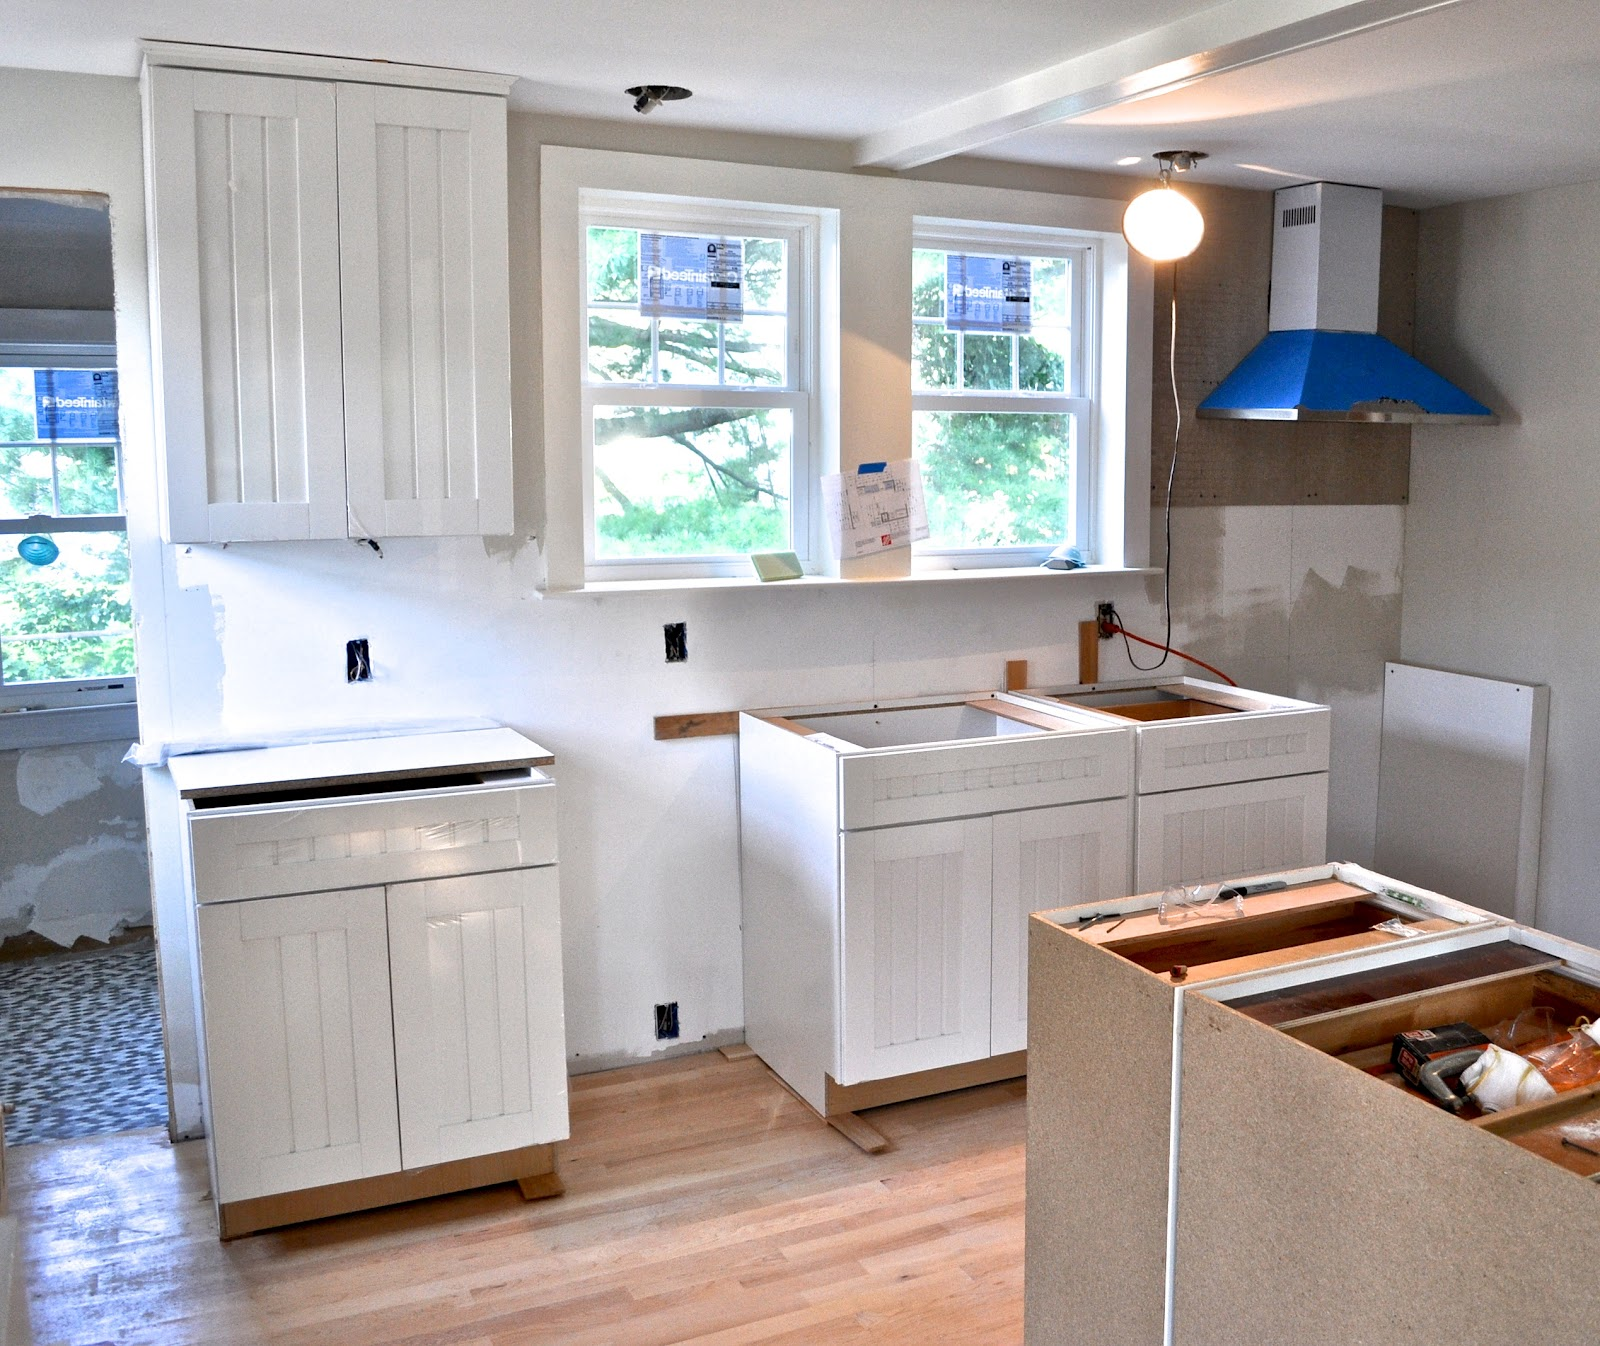 Peninsula Kitchen Layout Templates: SoPo Cottage: It's Starting To Look Like A Kitchen